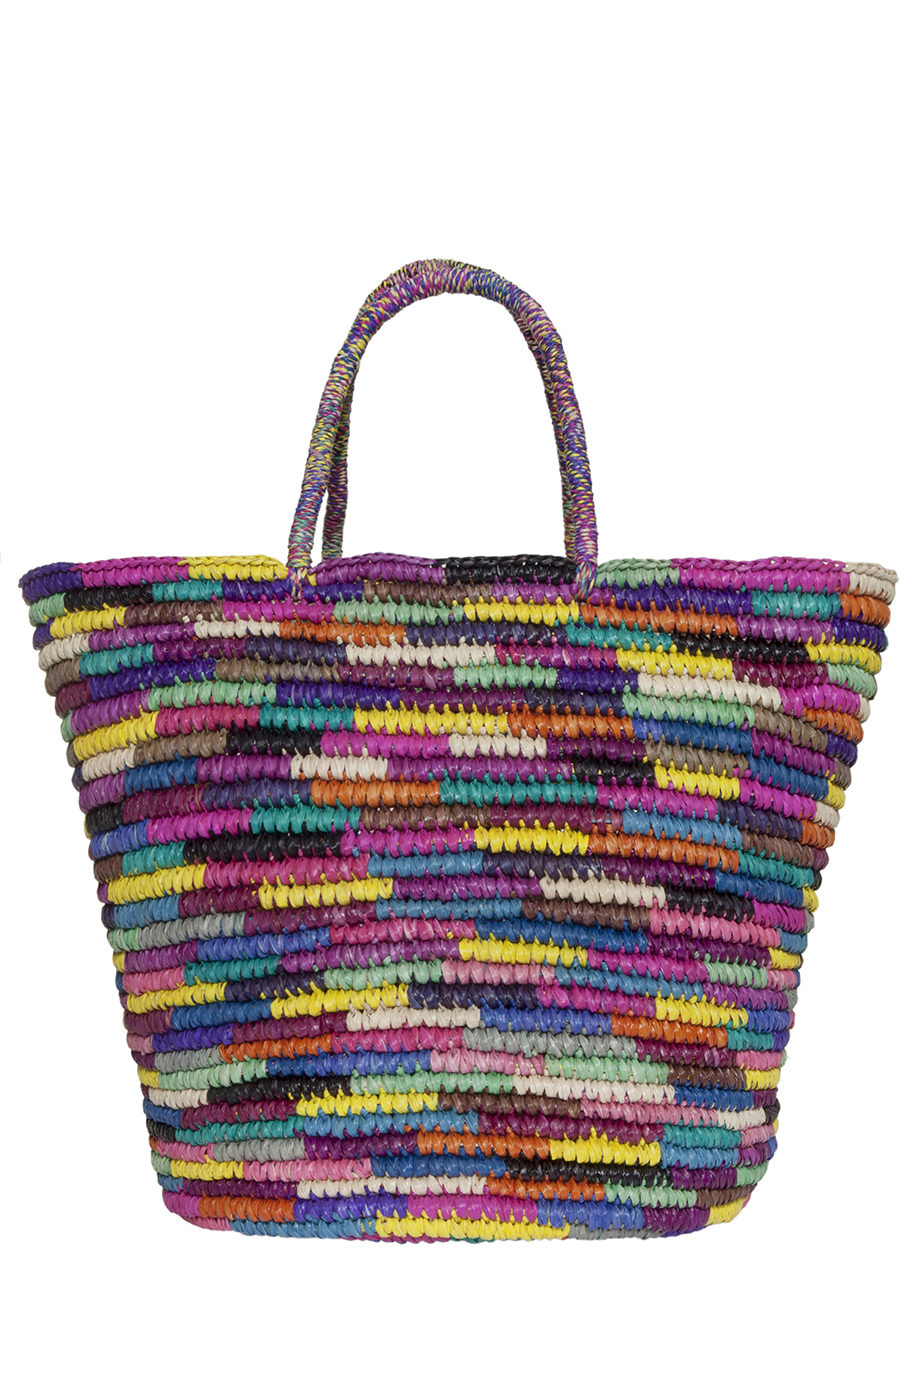 Sensi studio Colourful Straw Beach Bag | Lyst